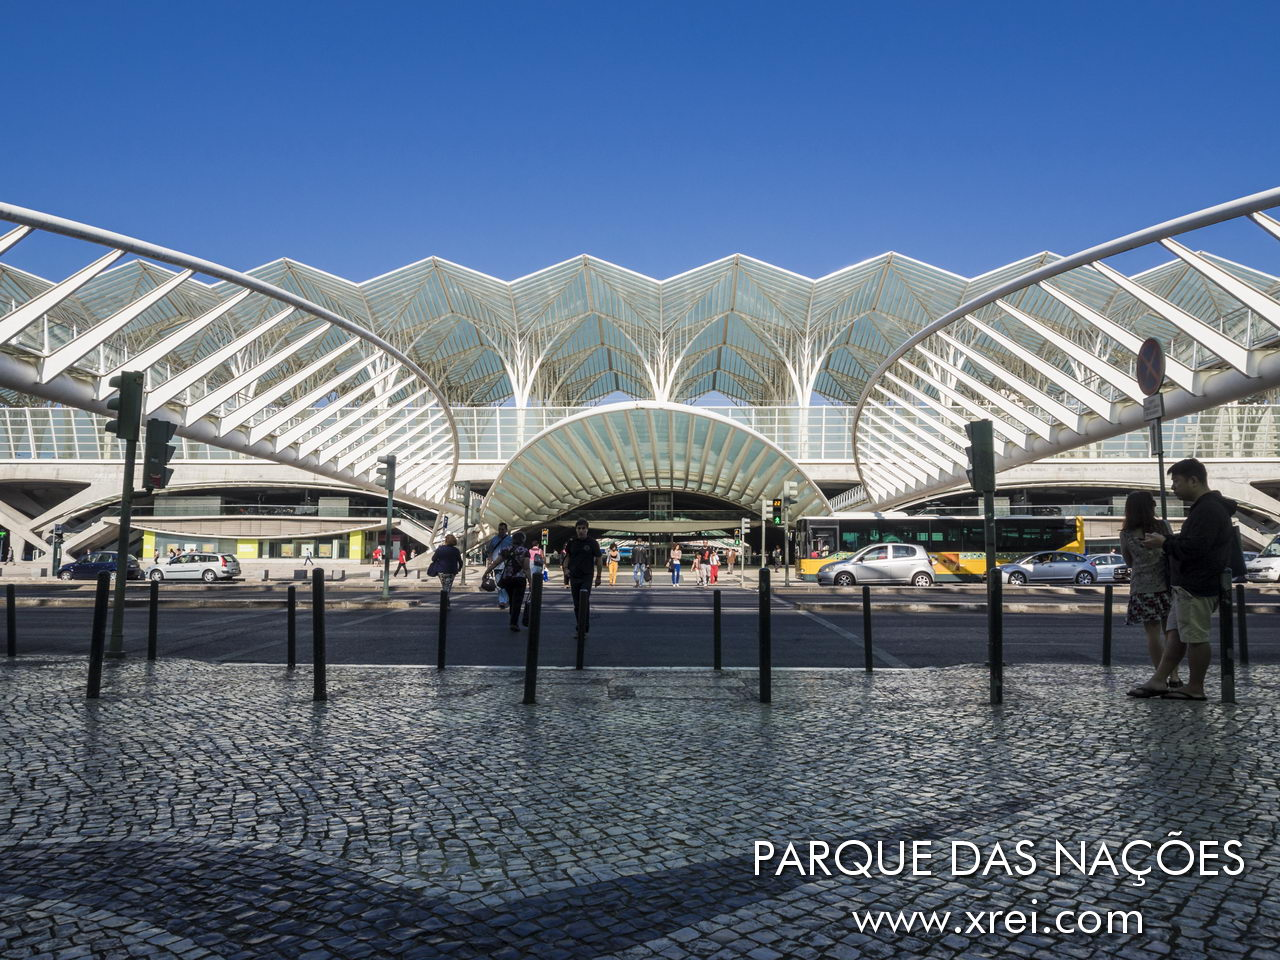 Gare do Oriente, also known as Gare Intermodal de Lisboa (GIL). With contemporary architecture, it was designed by Spanish architect and engineer Santiago Calatrava, completed in 1998 to serve Expo'98, and later Parque das Nações. Gare do Oriente includes the Metropolitano de Lisboa (Oriente) station, a commercial space and a bus station with connection to LIsboa, in the north, center and south of Portugal with suburban trains and medium and long distance trains.